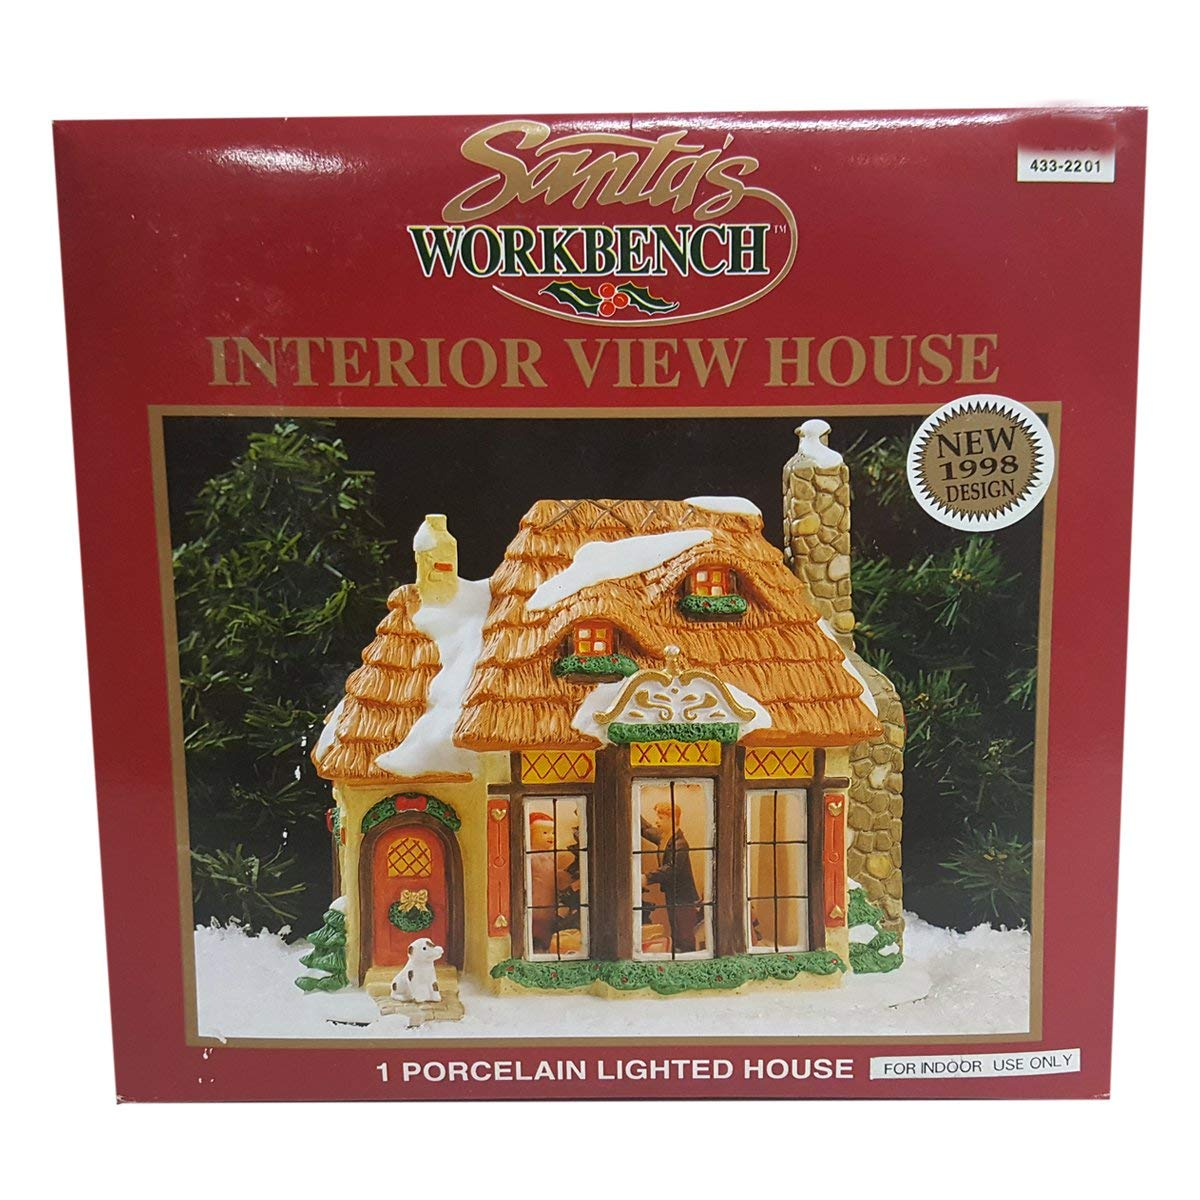 Santa's Workbench 1998 Interior View Porcelain Lighted House 433-2201